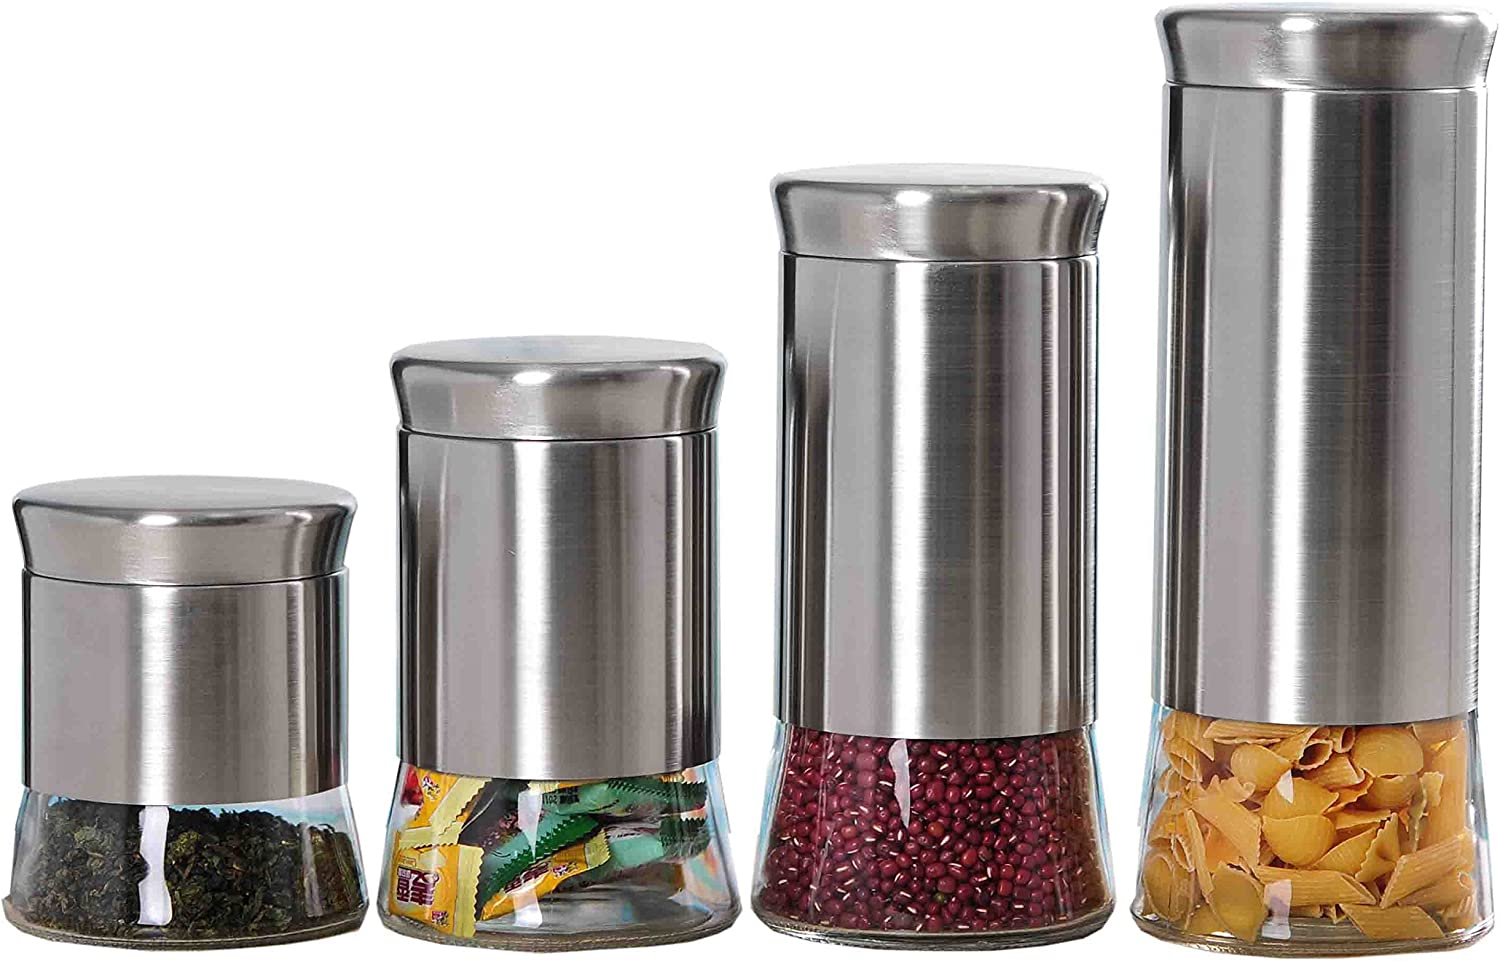 Home Basics 4 Piece Essence Food Storage Decorative Brushed Stainless Steel Glass Canister Set, Silver